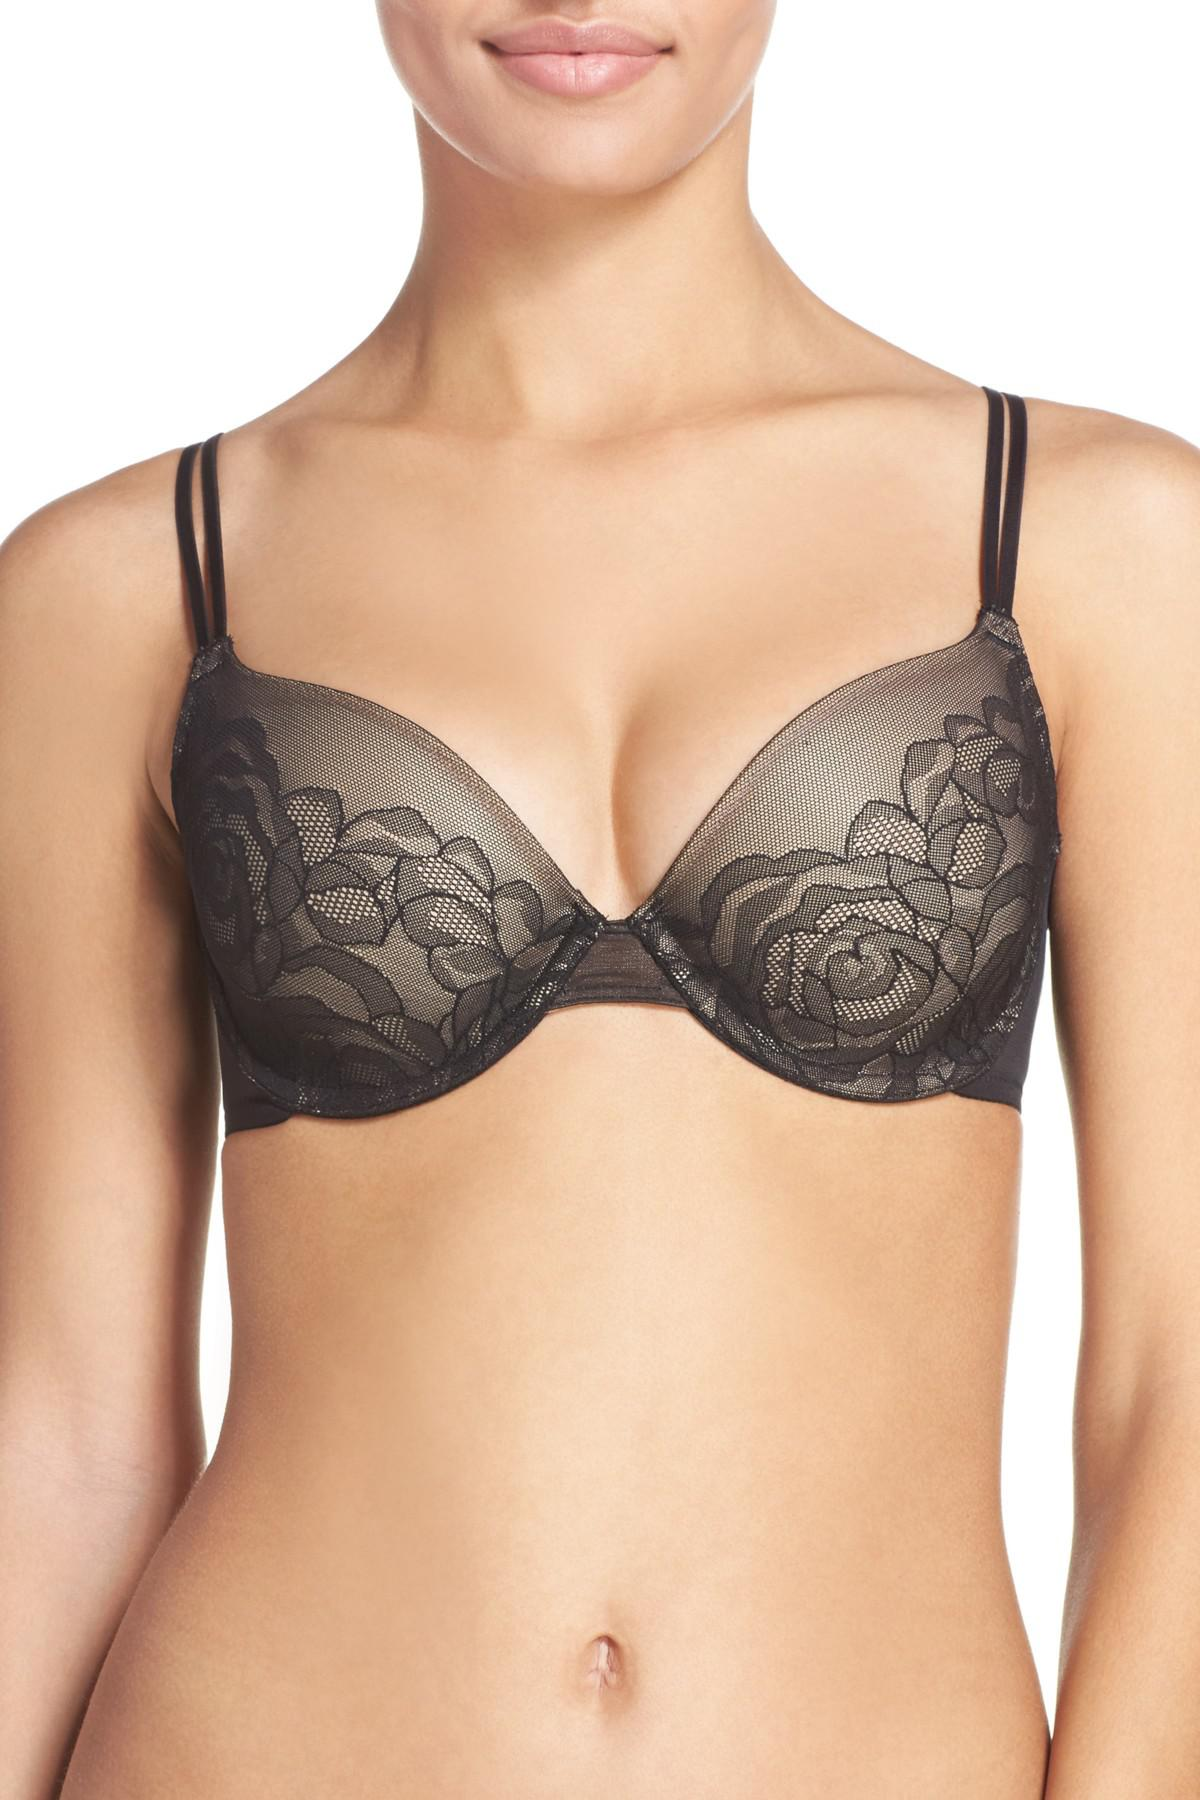 e06c9a5cff Lyst - Wacoal Stark Beauty Underwire Contour Bra in Black - Save 28%